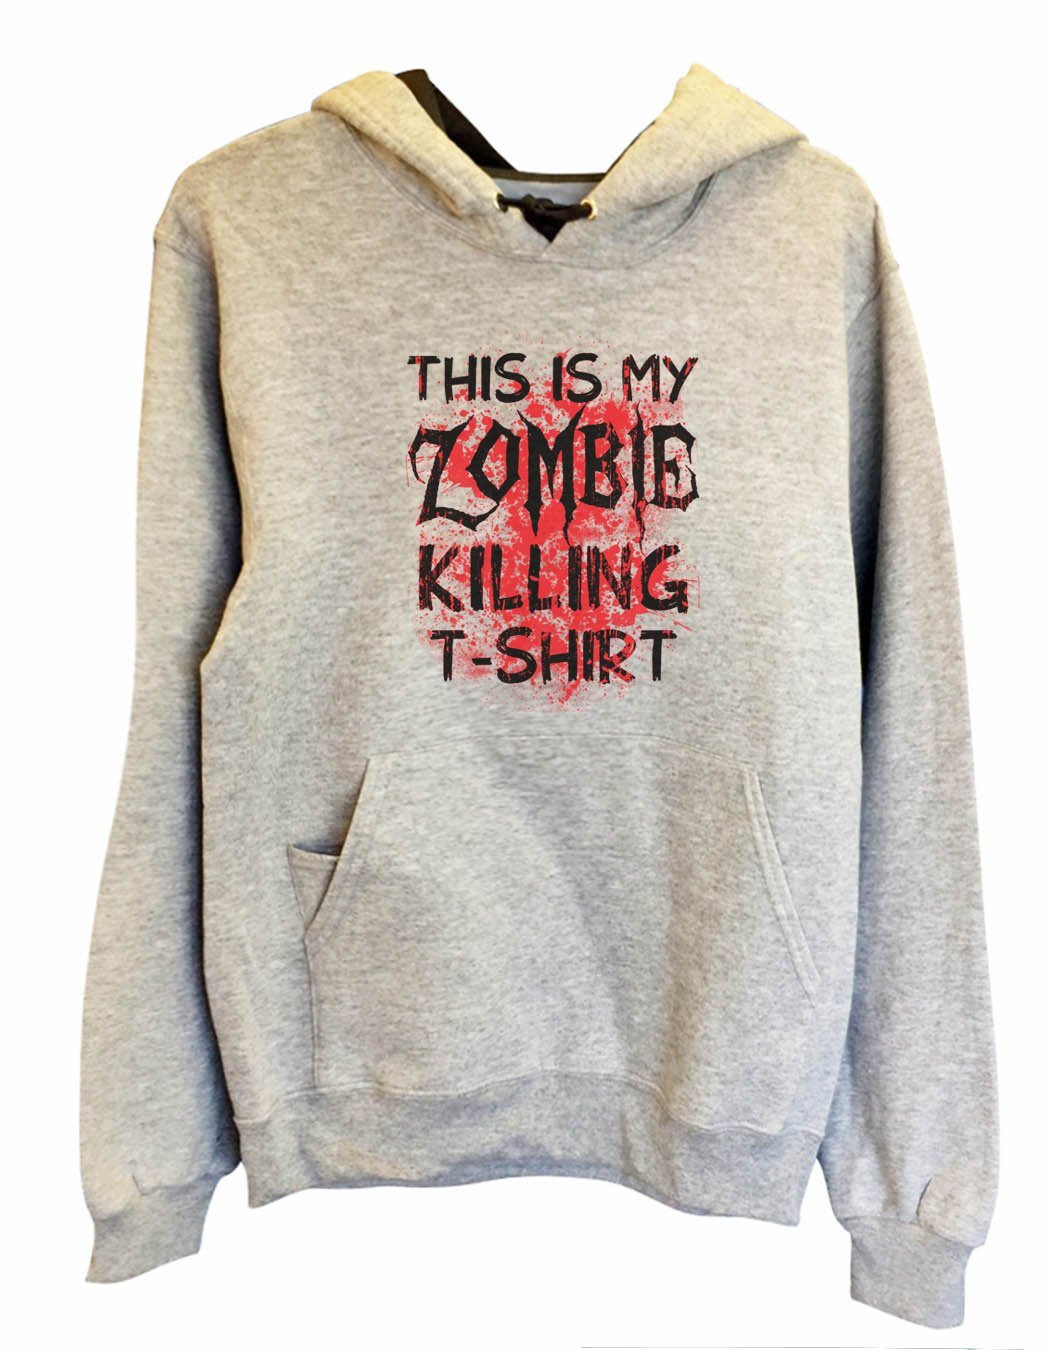 UNISEX HOODIE - This Is My Zombie Killing T-Shirt - FUNNY MENS AND WOMENS HOODED SWEATSHIRTS - 2312 Funny Shirt Small / Heather Grey